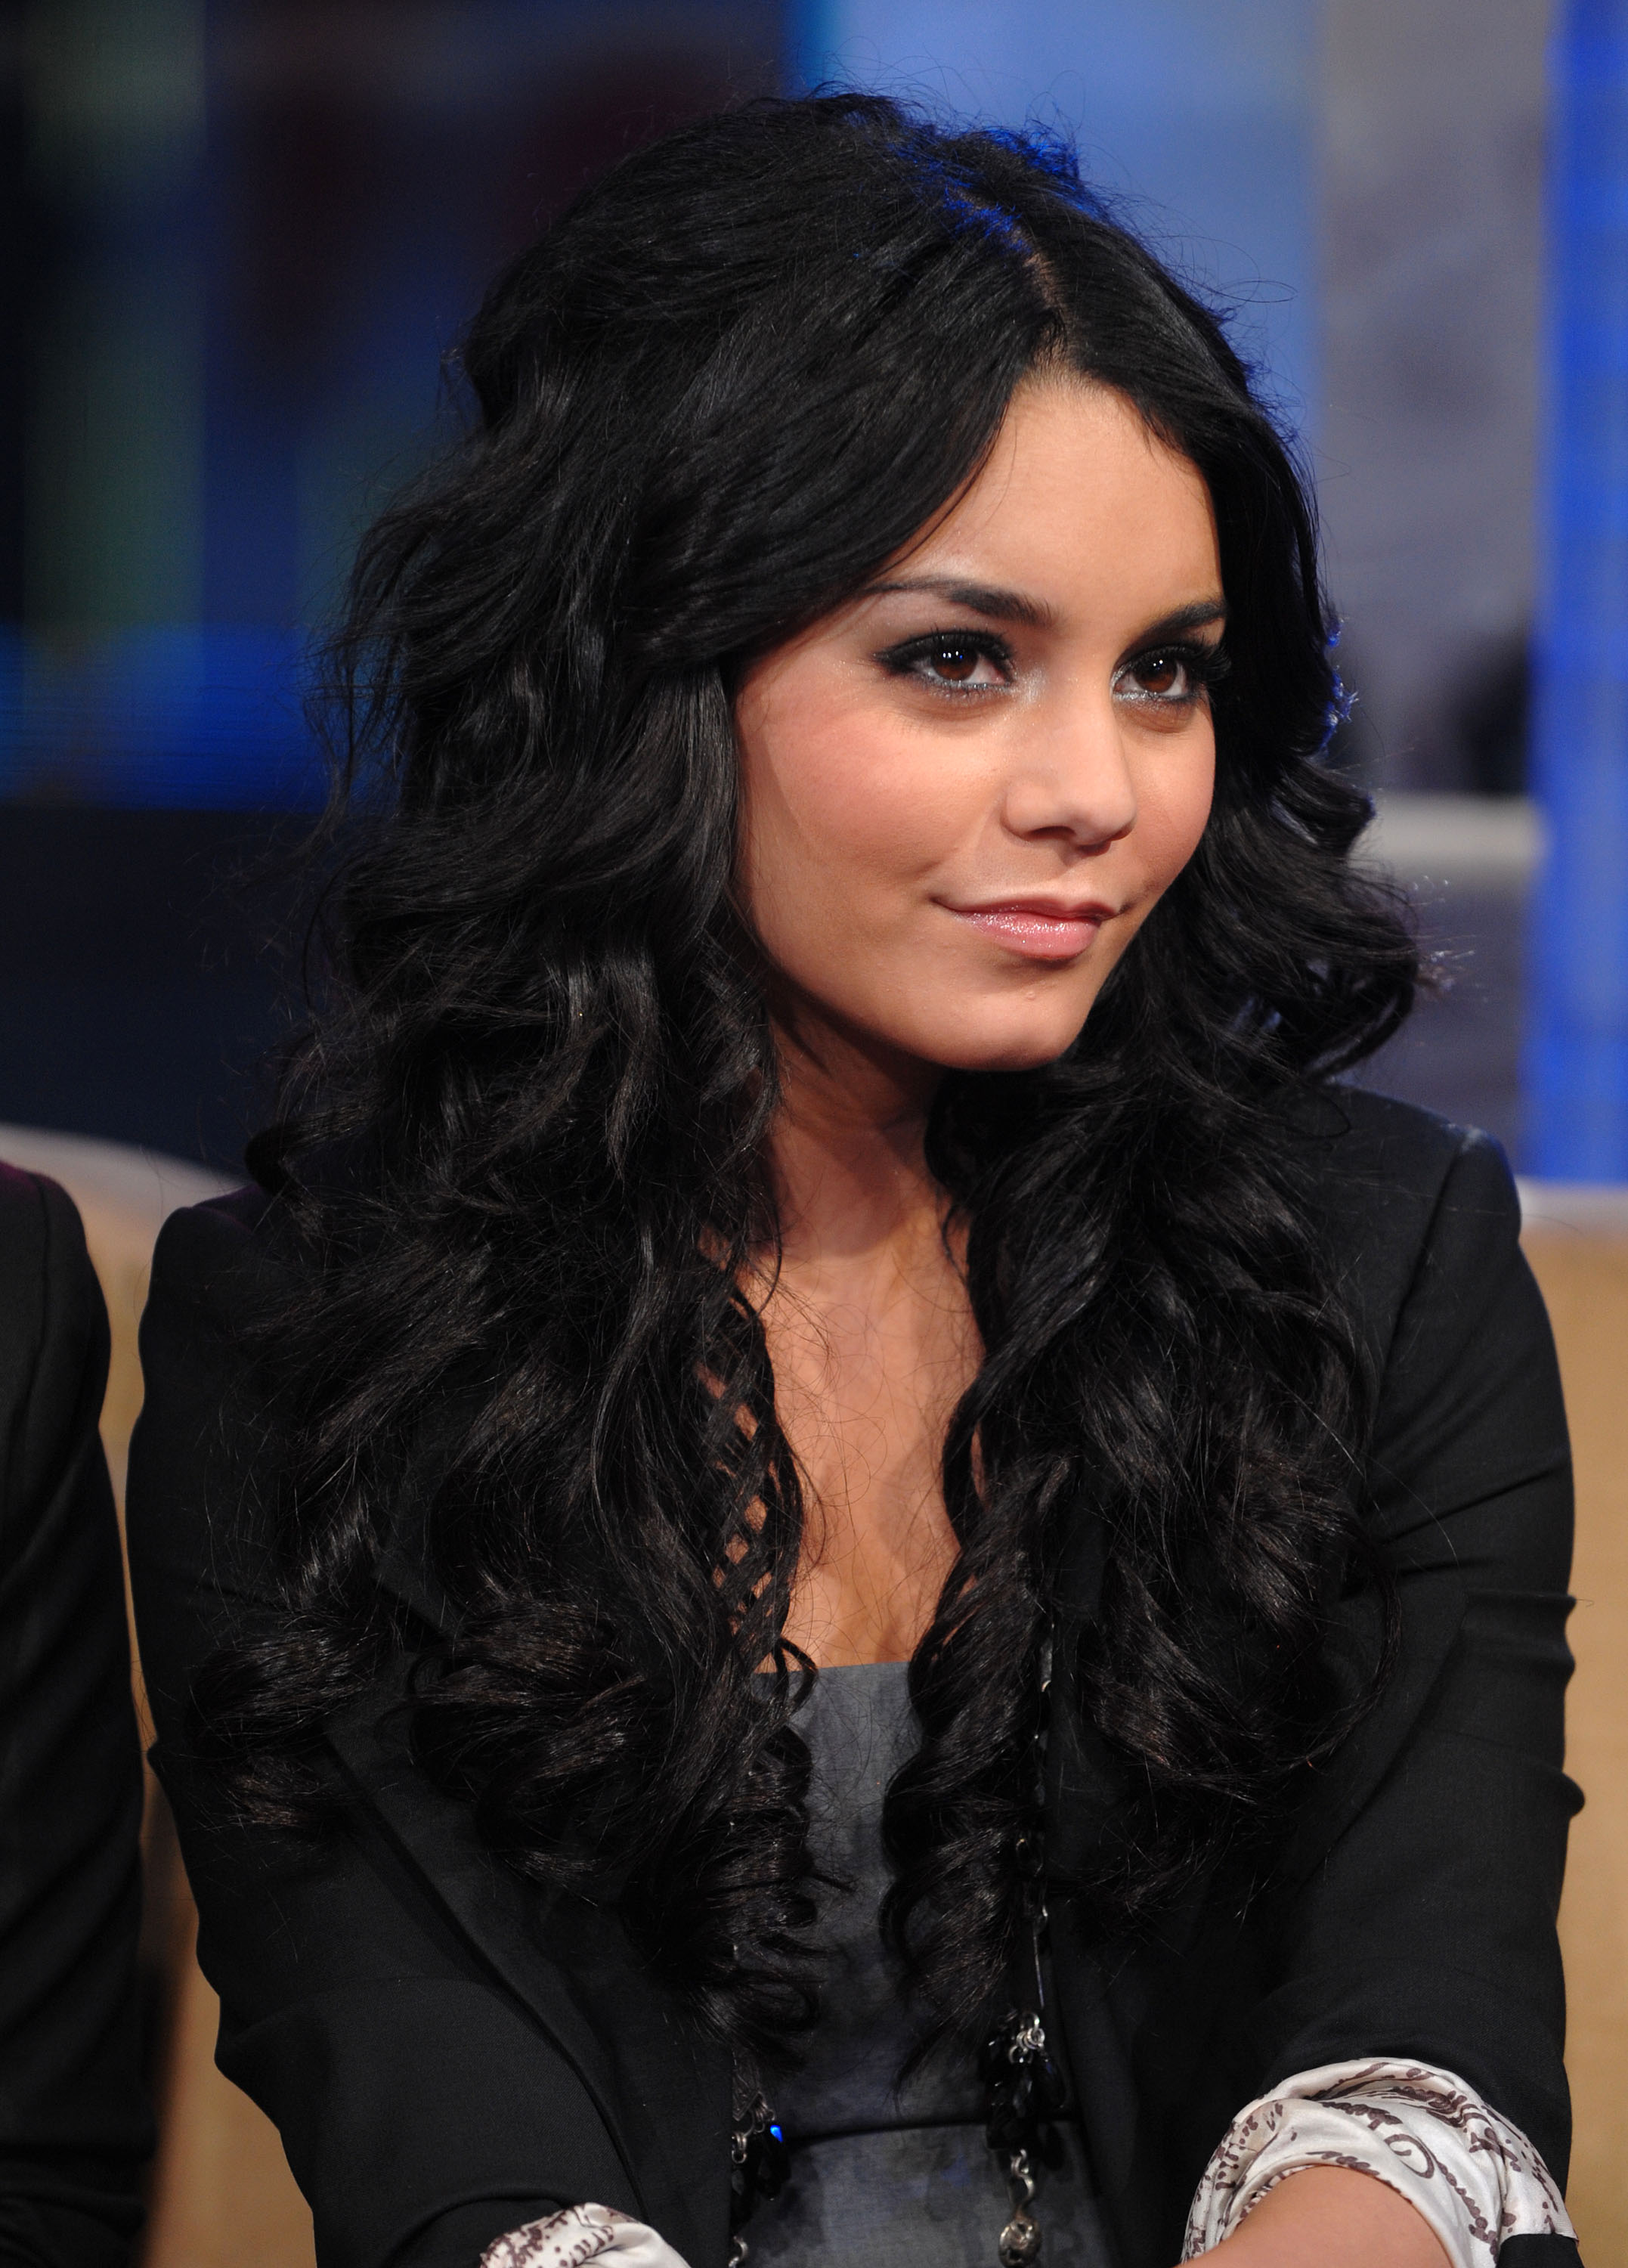 vanessa hudgens photo 248 of 5250 pics  wallpaper